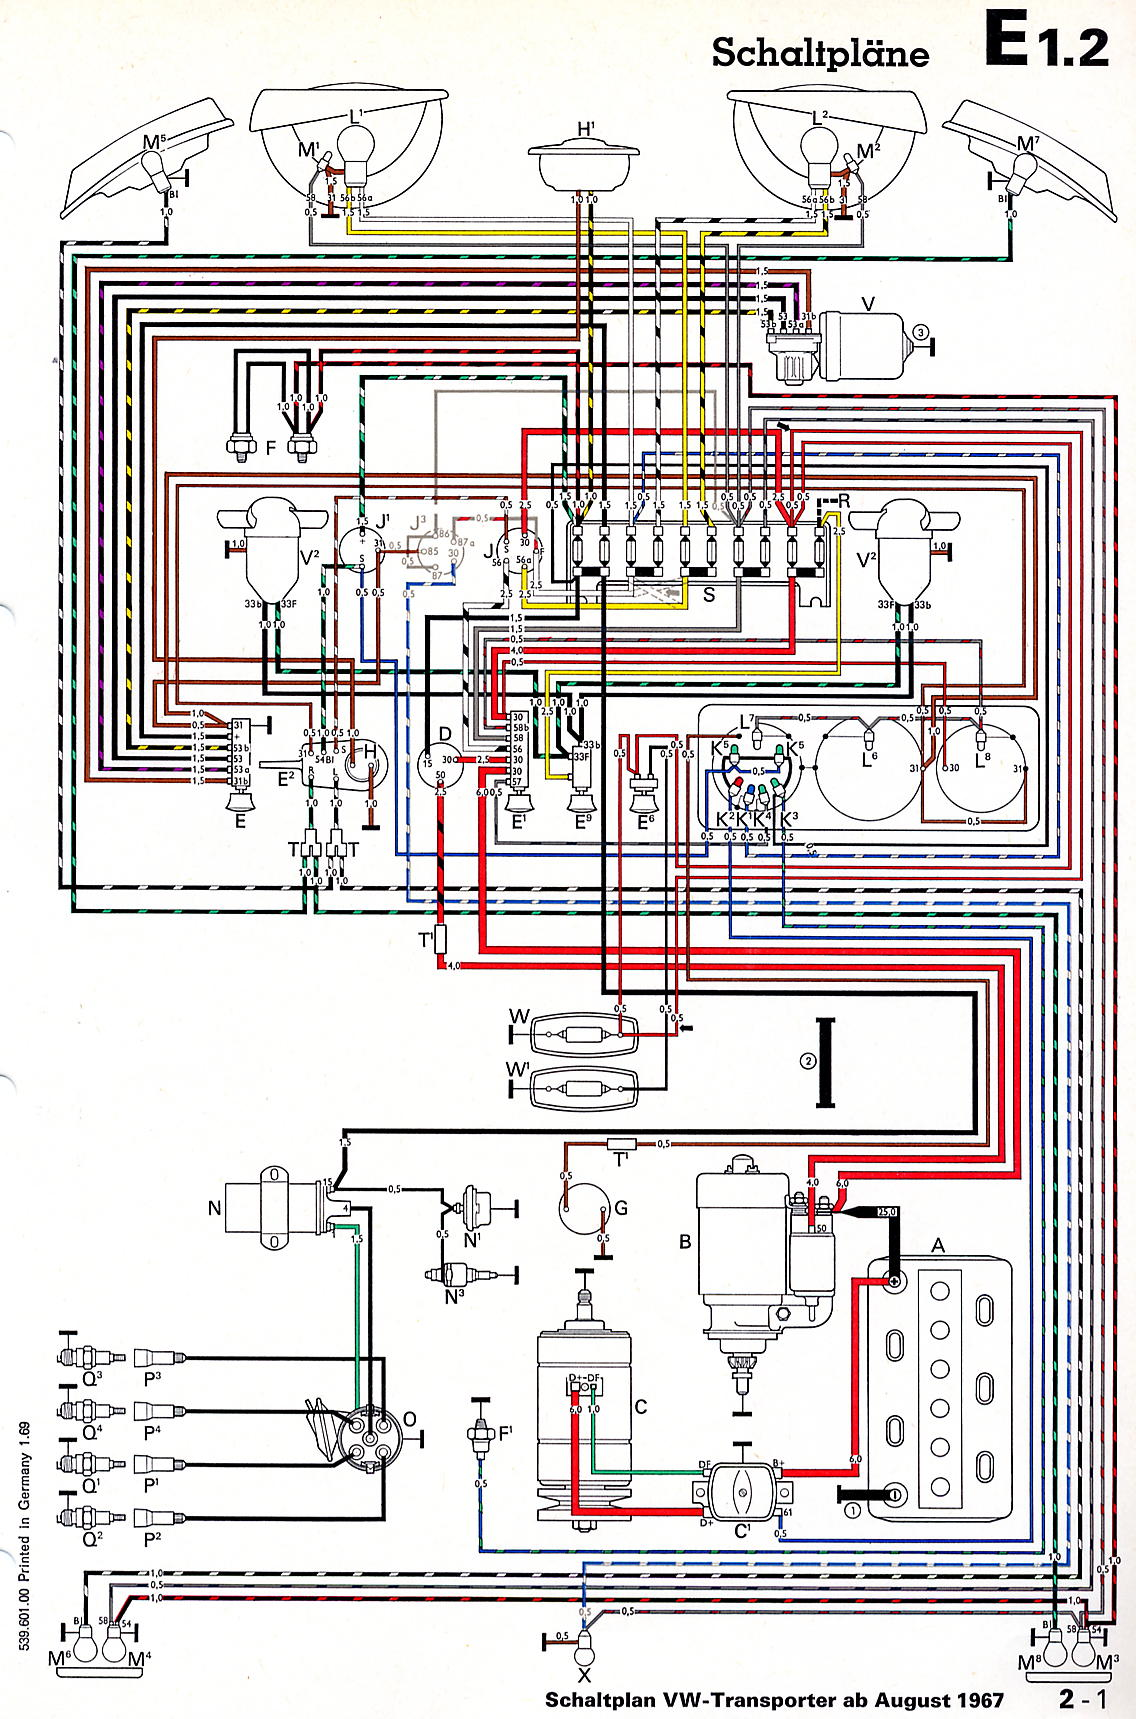 Wiring diagram as well vw beetle wiring diagram on vw t4 westfalia vintagebus com vw bus and other wiring diagrams rh vintagebus com asfbconference2016 Image collections